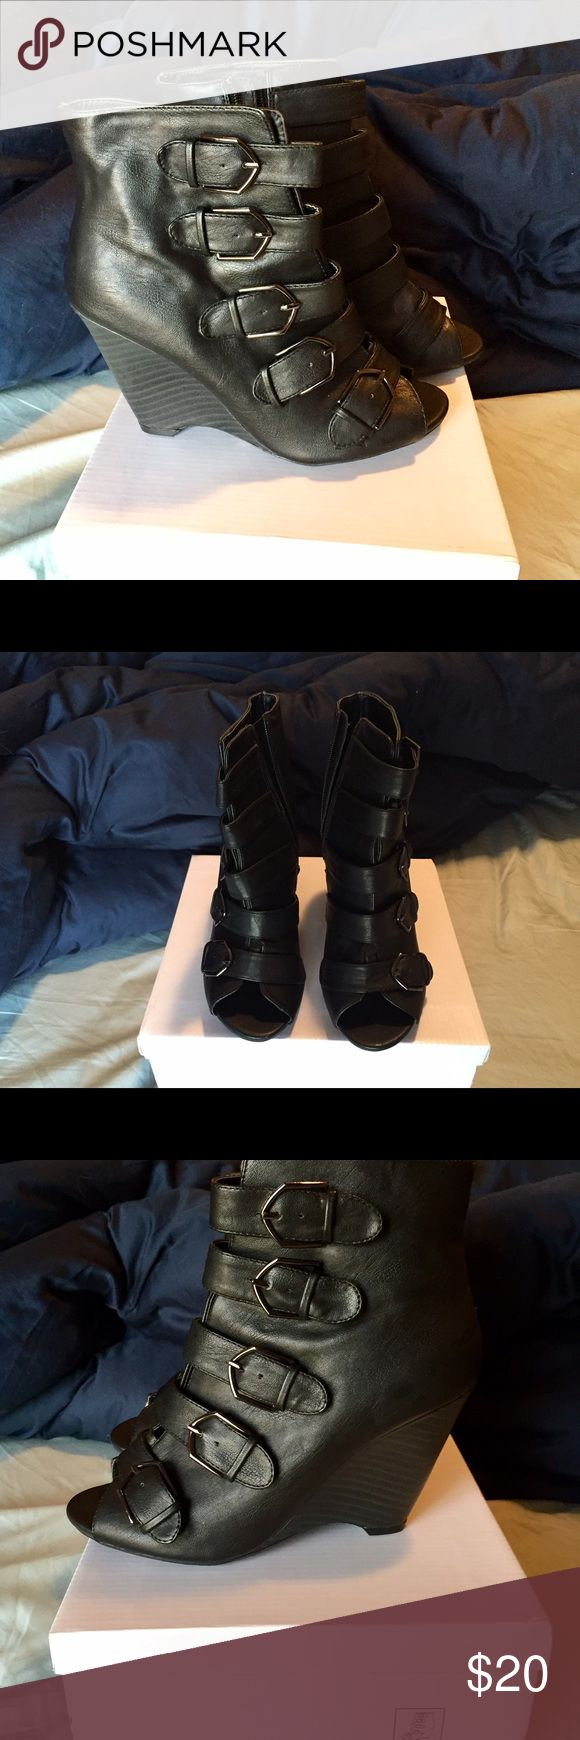 Black wedge ankle boot Black, peep toe, wedge with side zipper. Never been worn! Black Poppy Shoes Ankle Boots & Booties